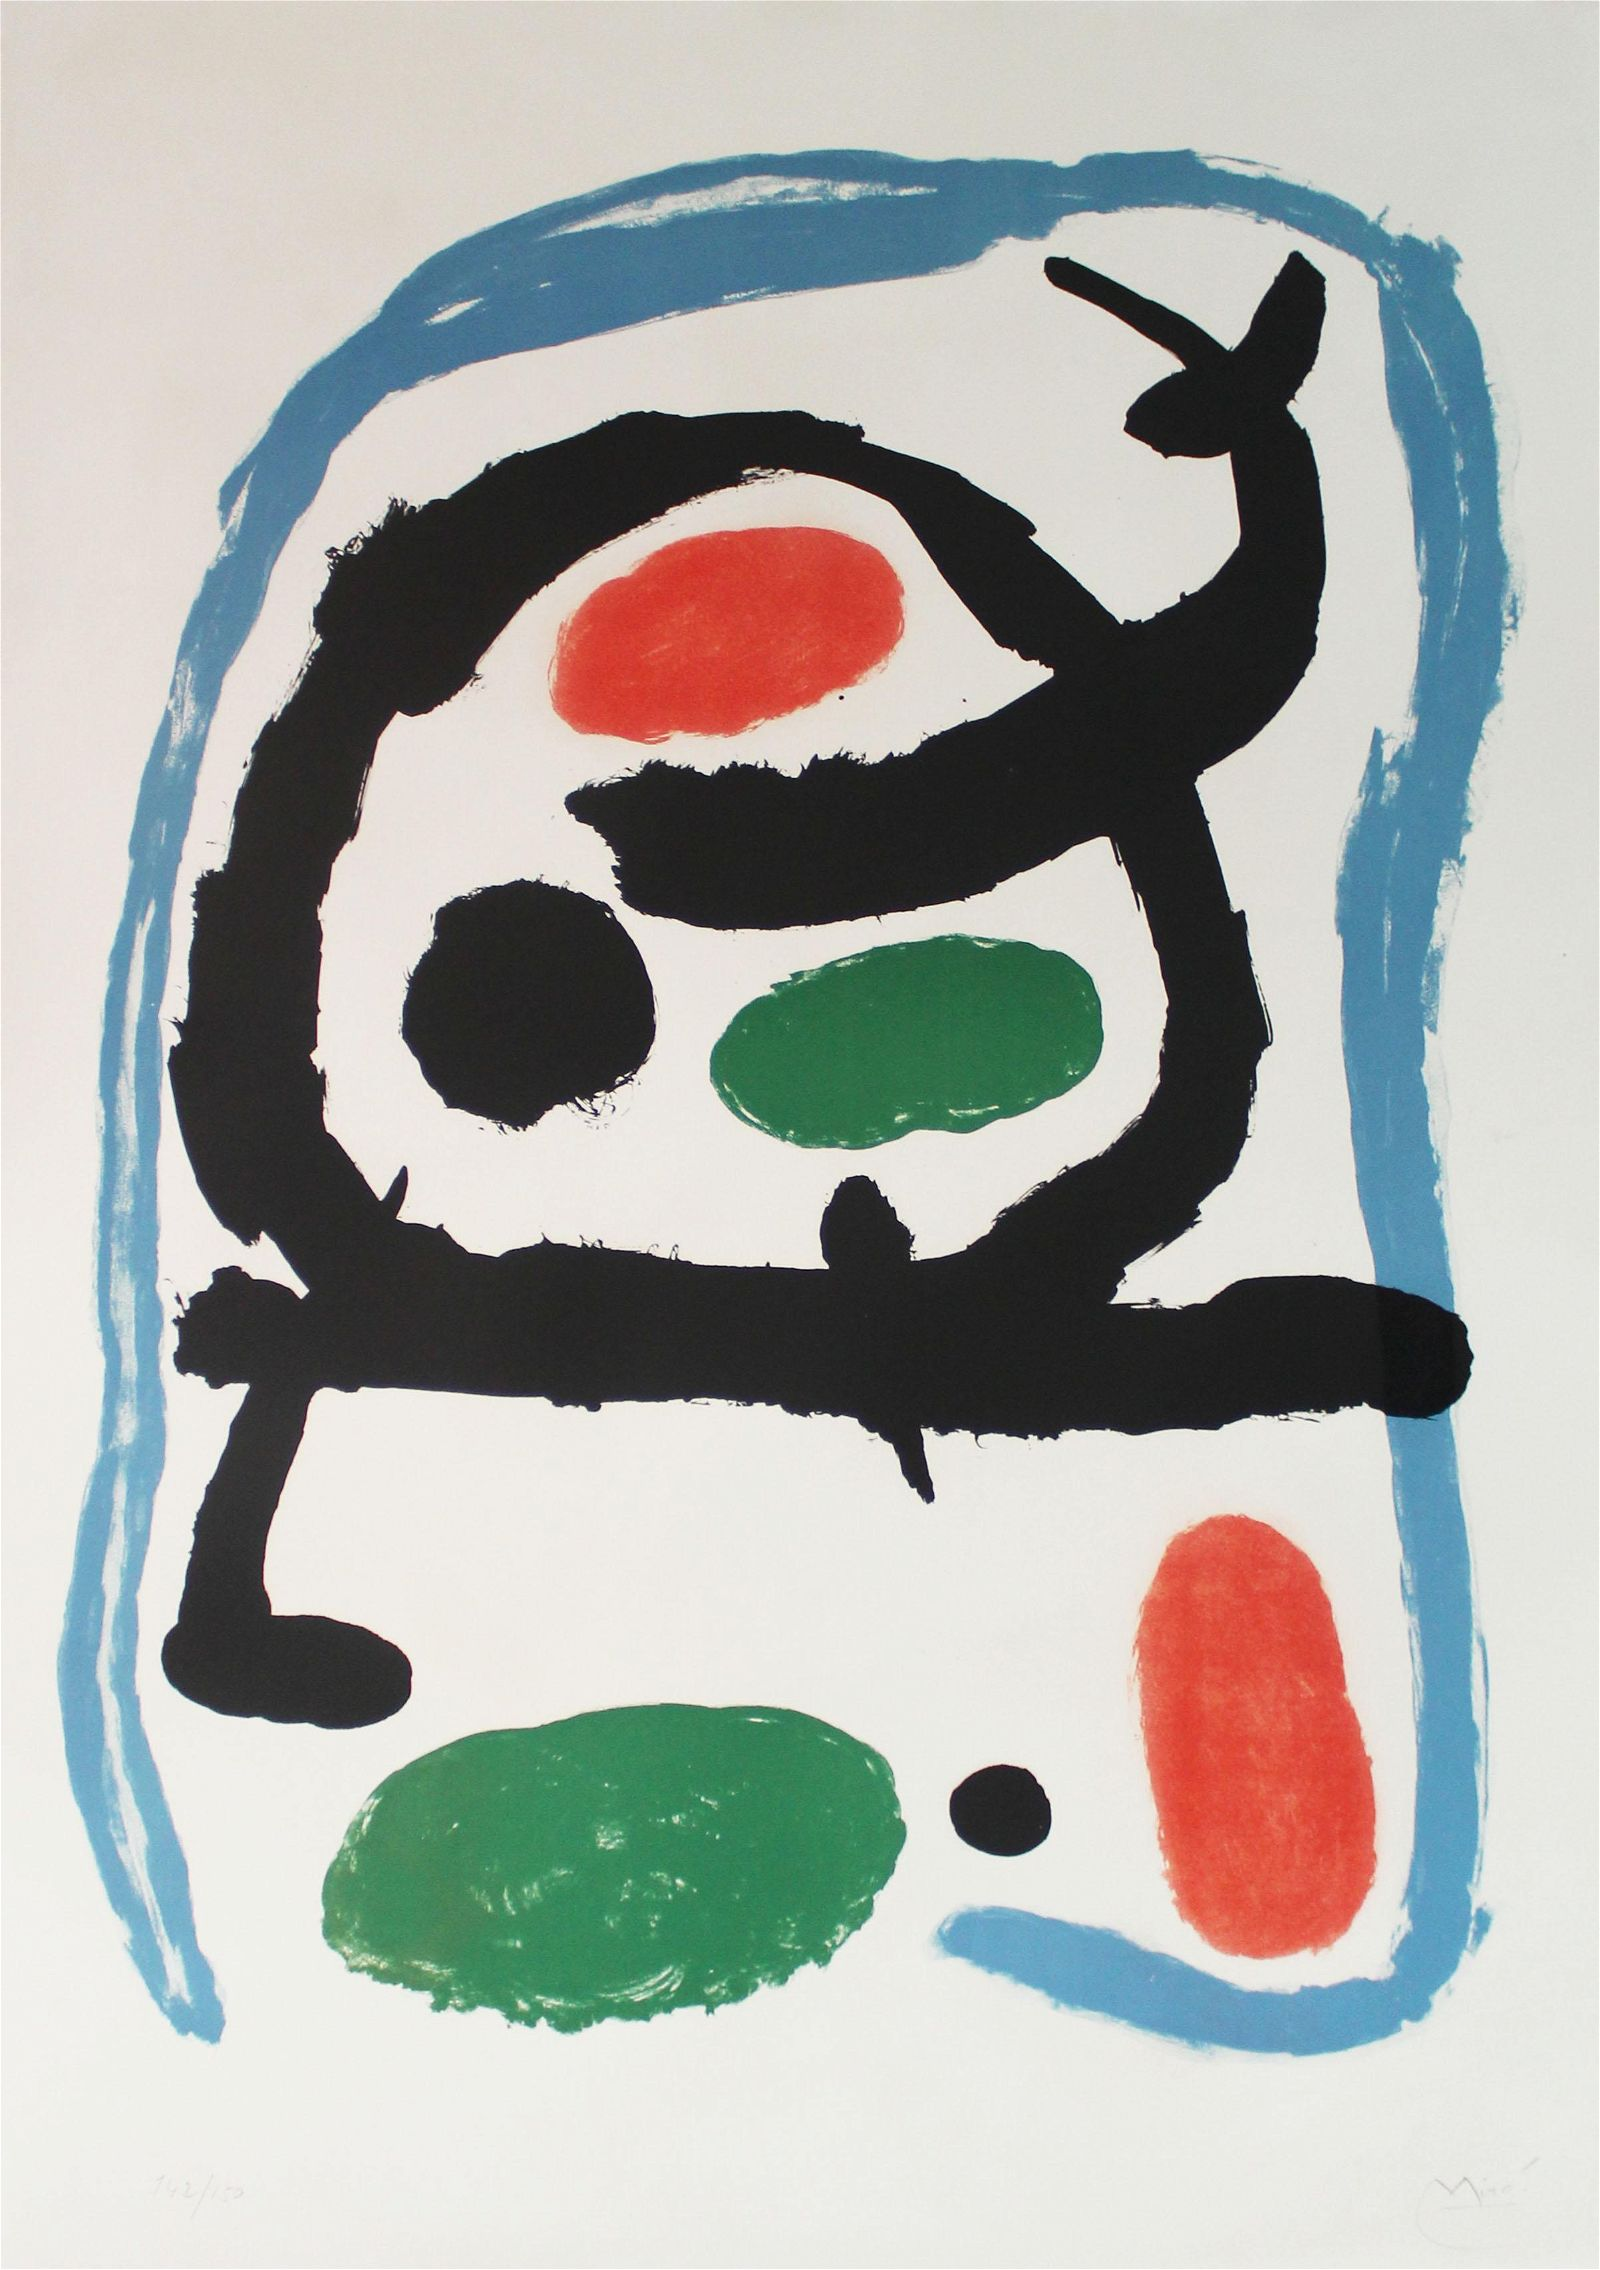 Joan Miro - Poster for Miro Exhibition at the Musee